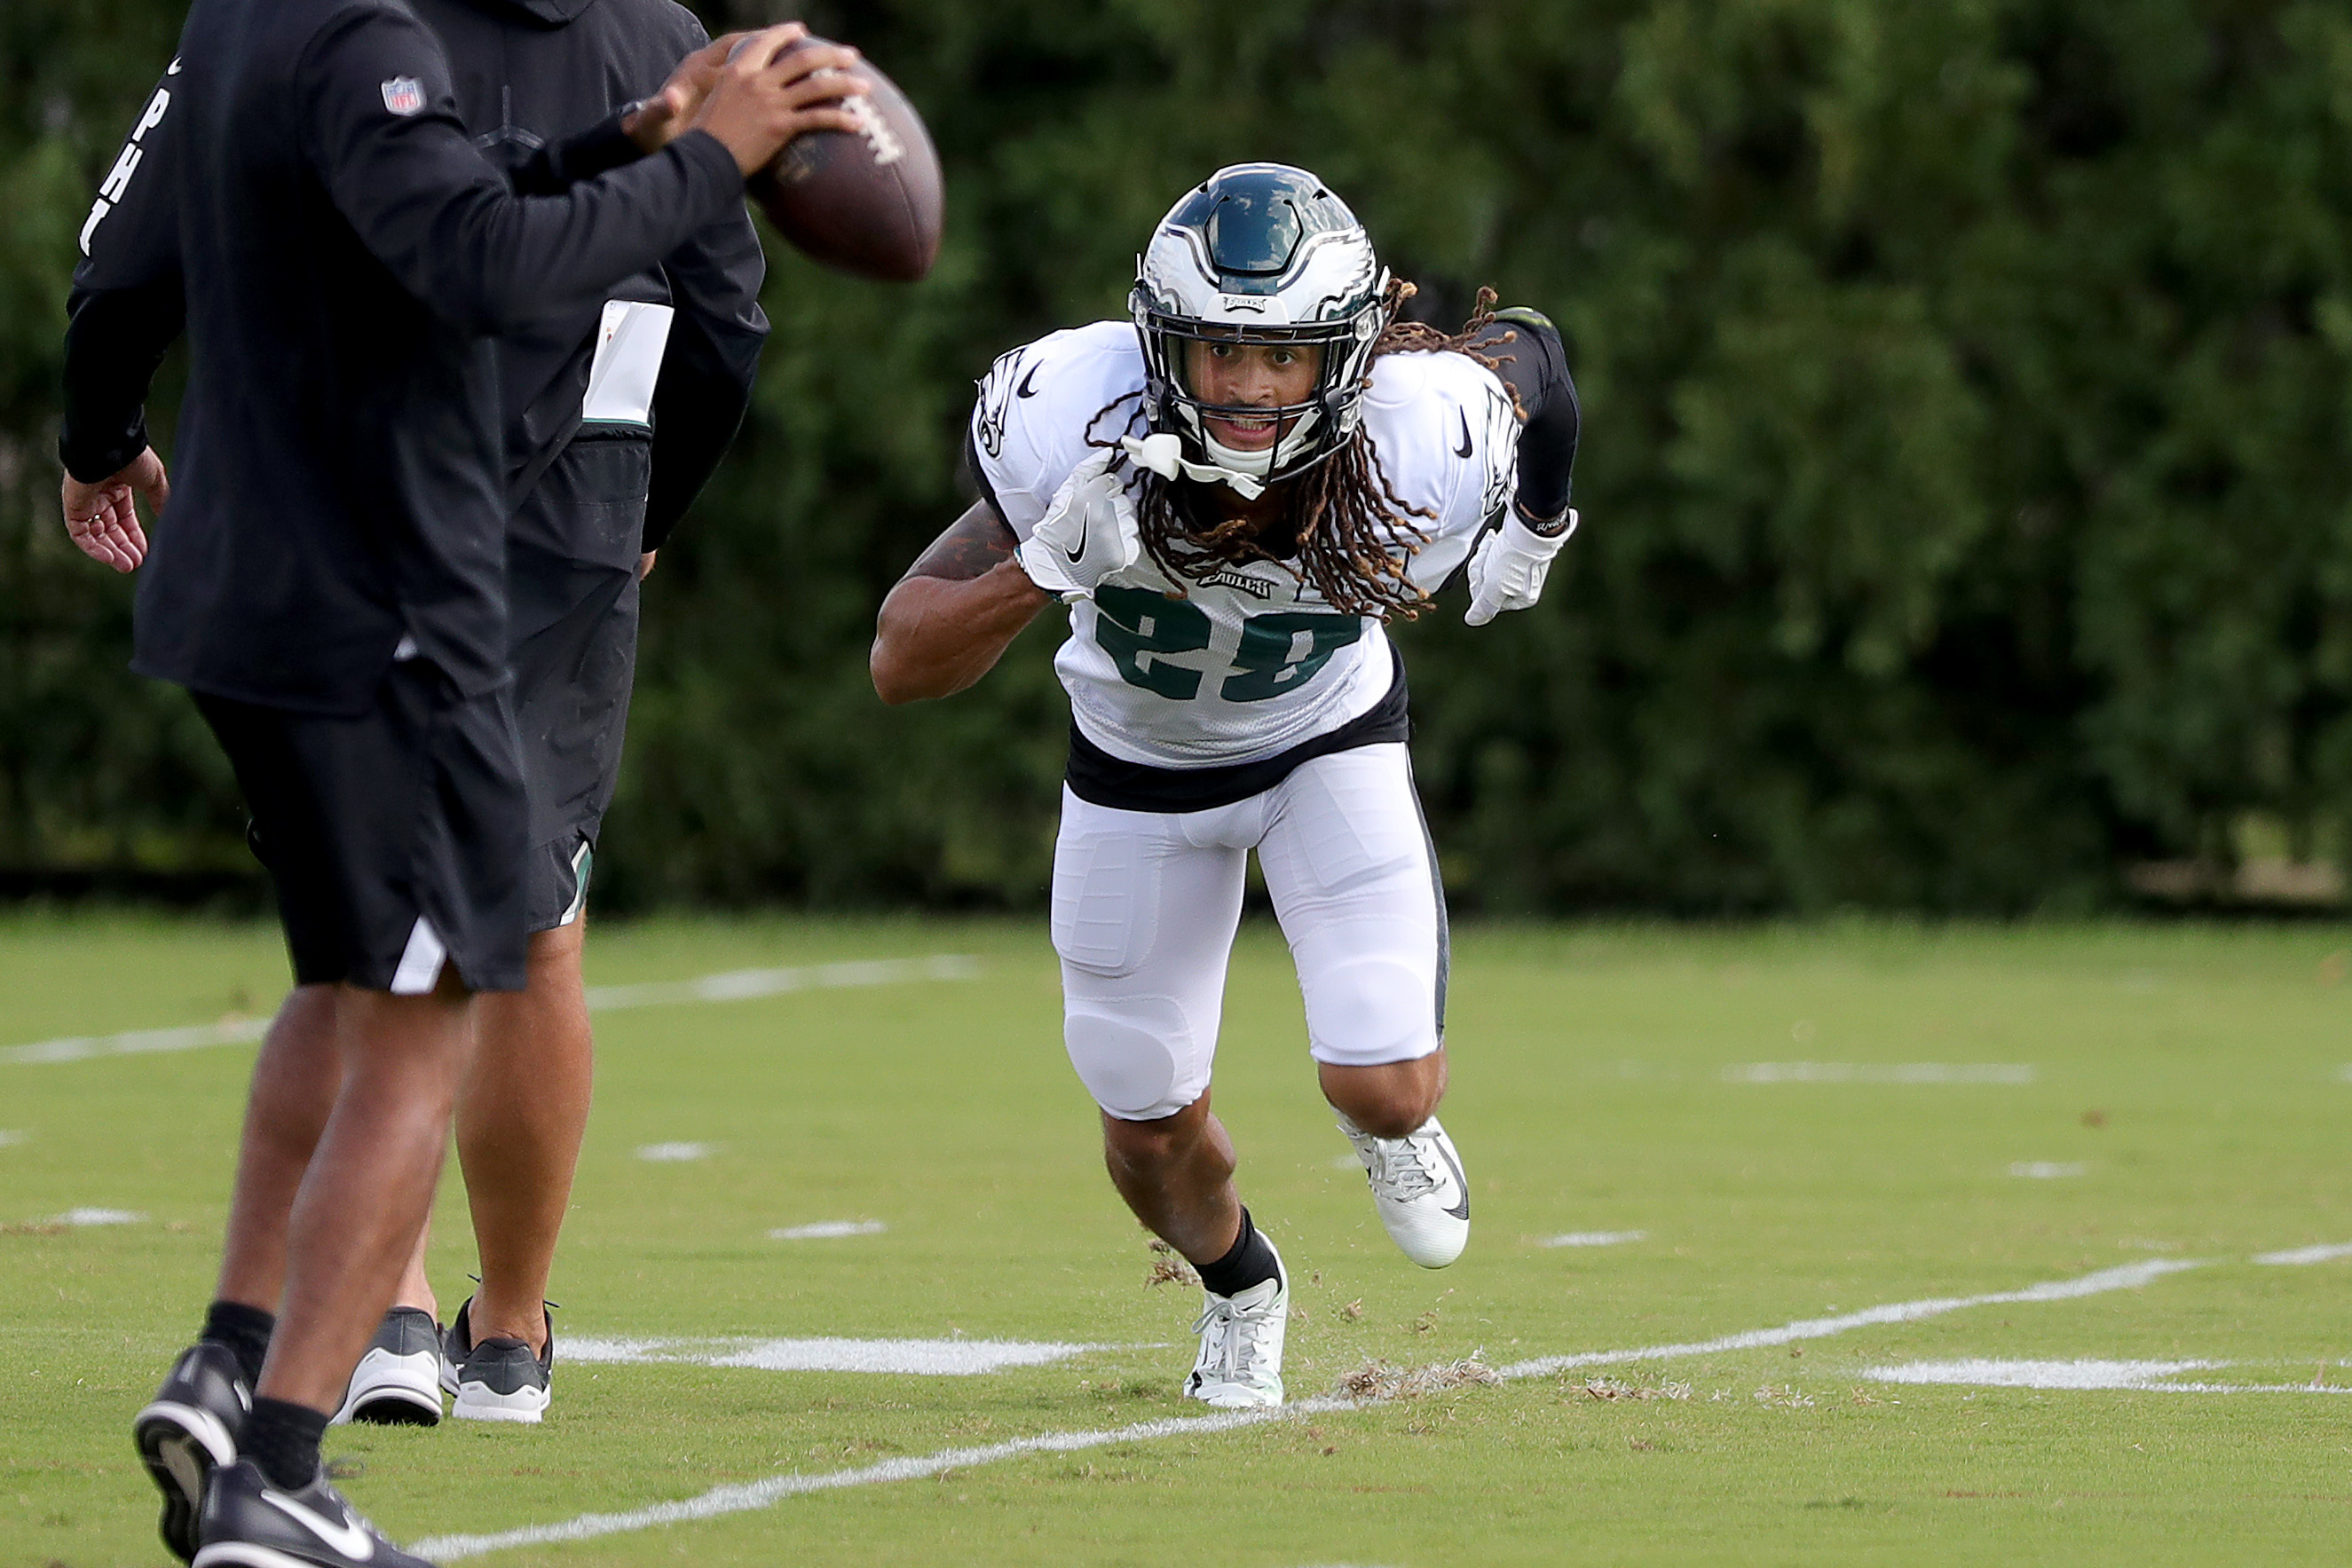 Eagles Avonte Maddox follows the ball during a drill at Eagles practice at the NovaCare Complex in Philadelphia, PA on October 3, 2018.